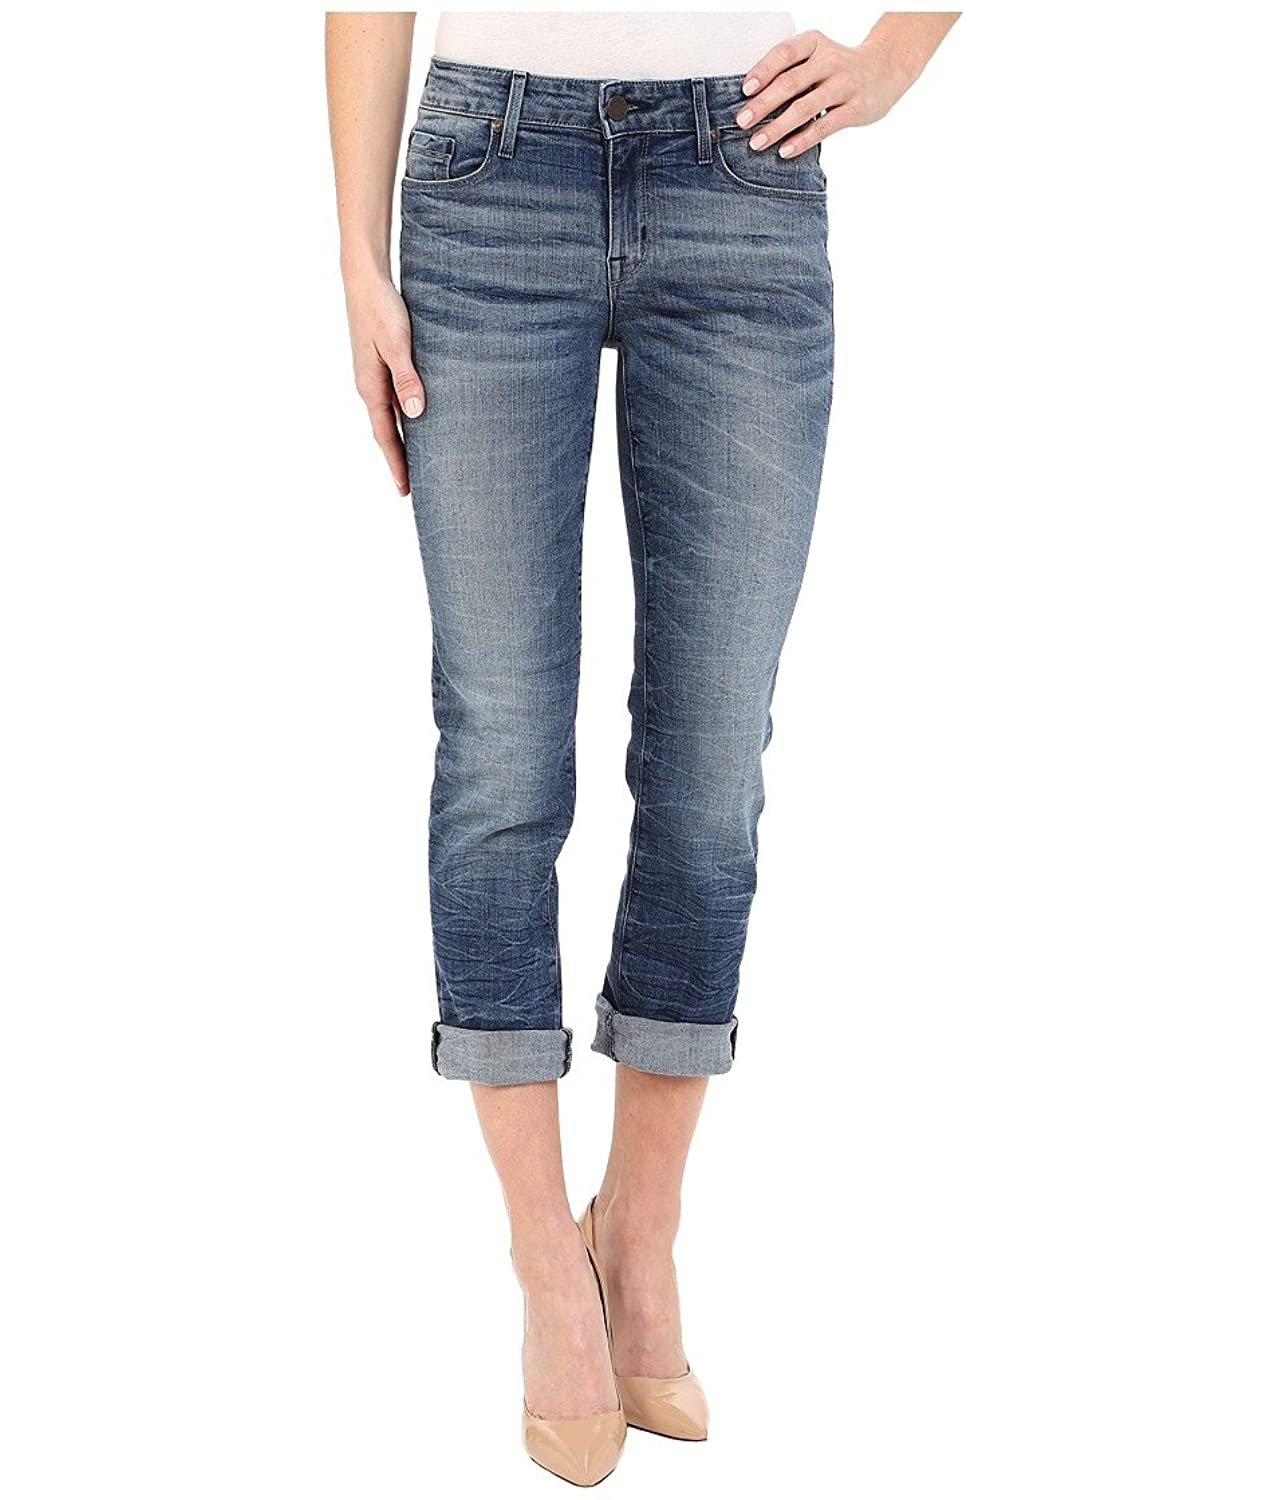 Parker Smith Women's Courtney Cuffed Crop Jeans in